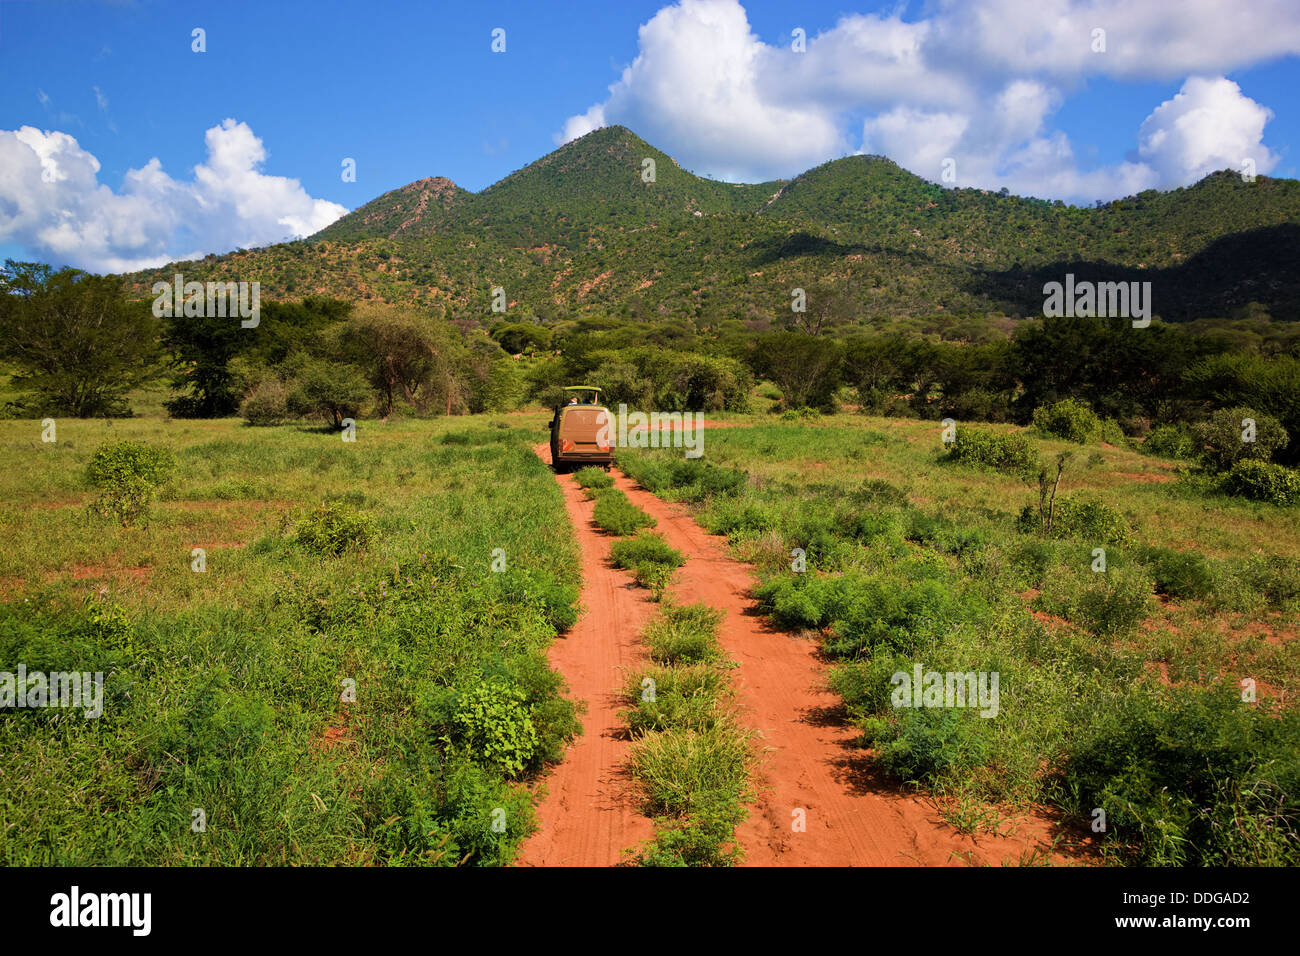 Driving along a dirt road through the Tsavo West National Park, Kenya, Africa on safari - Stock Image